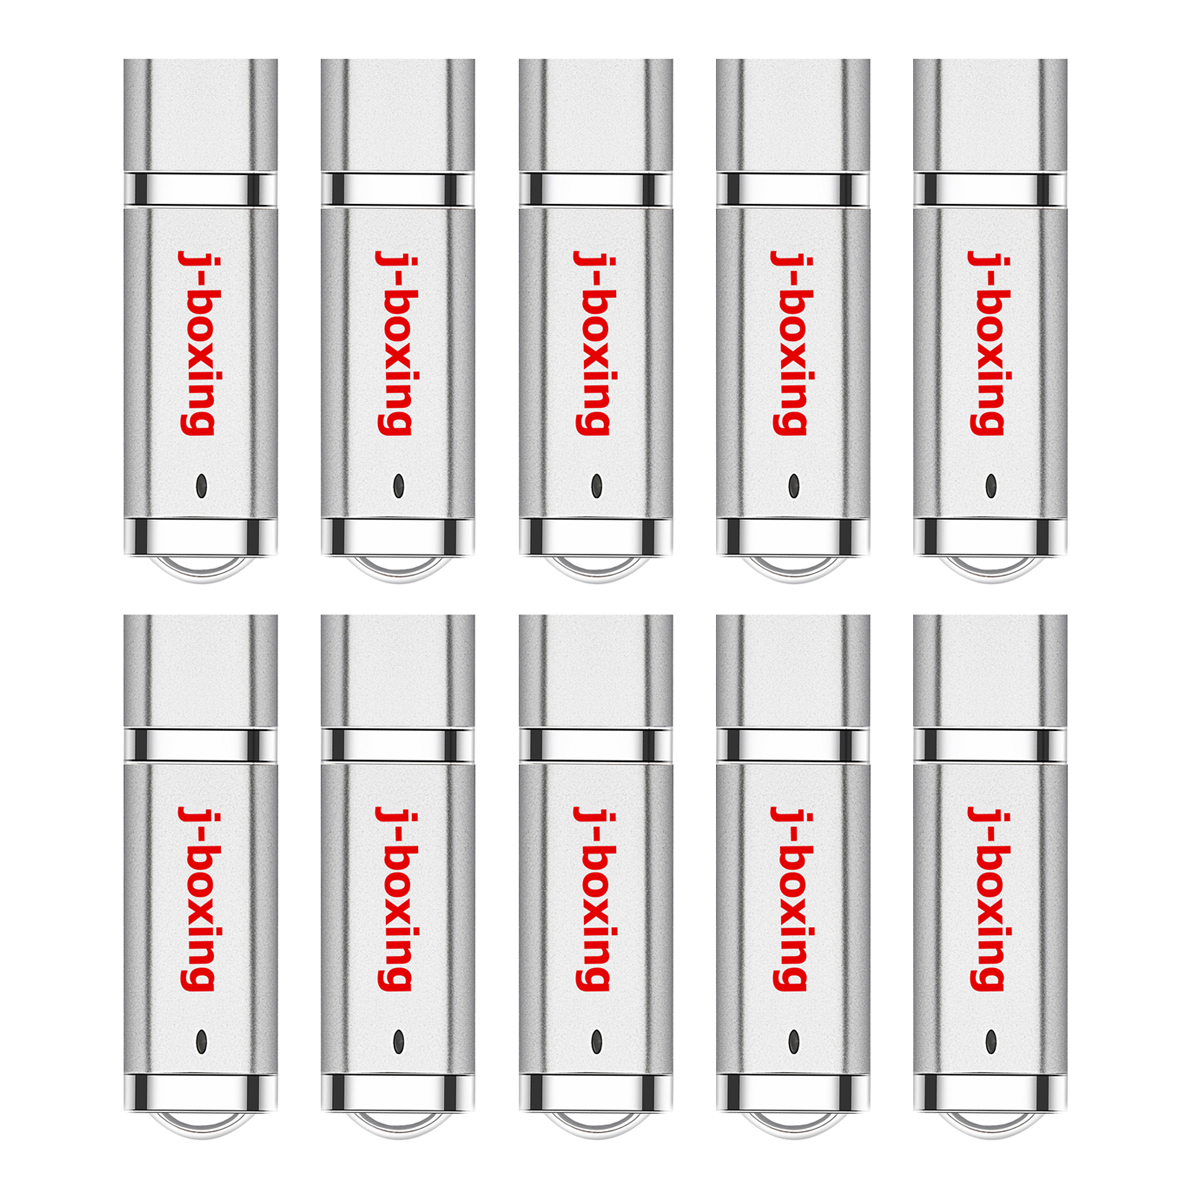 J-boxing 10PCS USB Flash Drives Bulk 1GB 2GB 4GB 8GB 16GB 32GB Lighter Design Thumb Drives Jump Drive Pen Drive Multi-colors